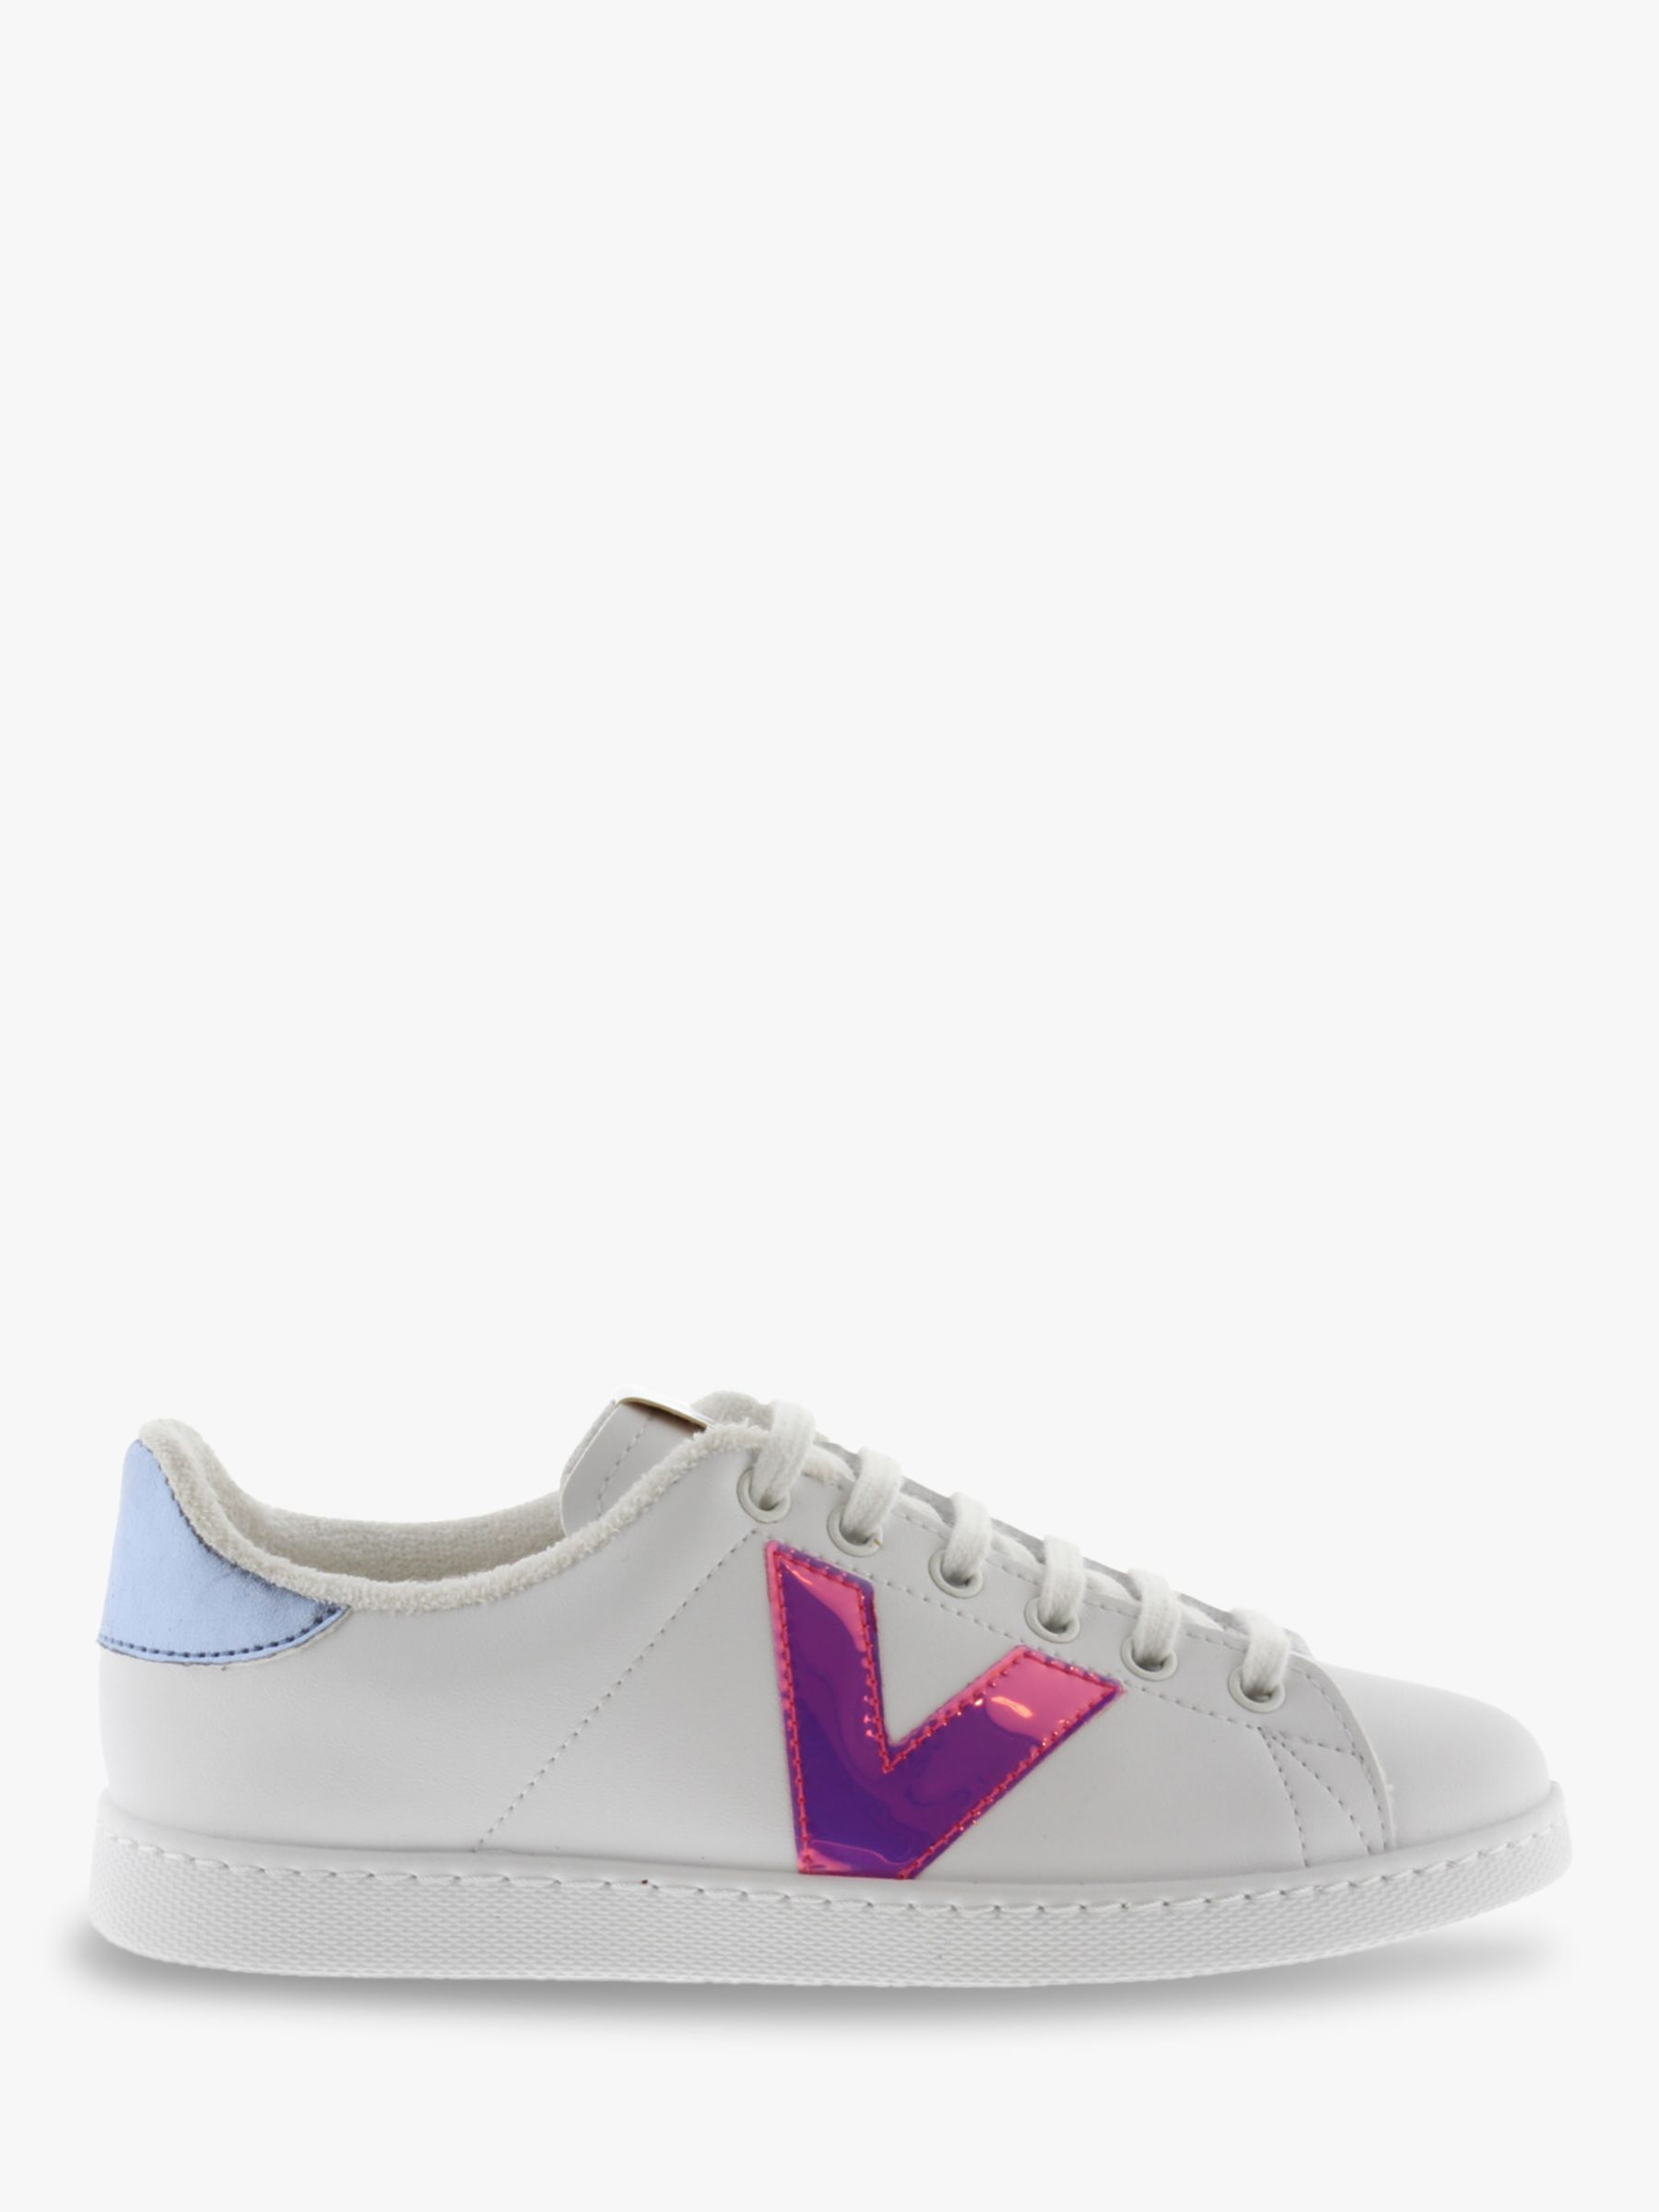 Buy Victoria Shoes Tenis Vinilo Trainers, White, 3 Online at www.retrievedmagnetic.com